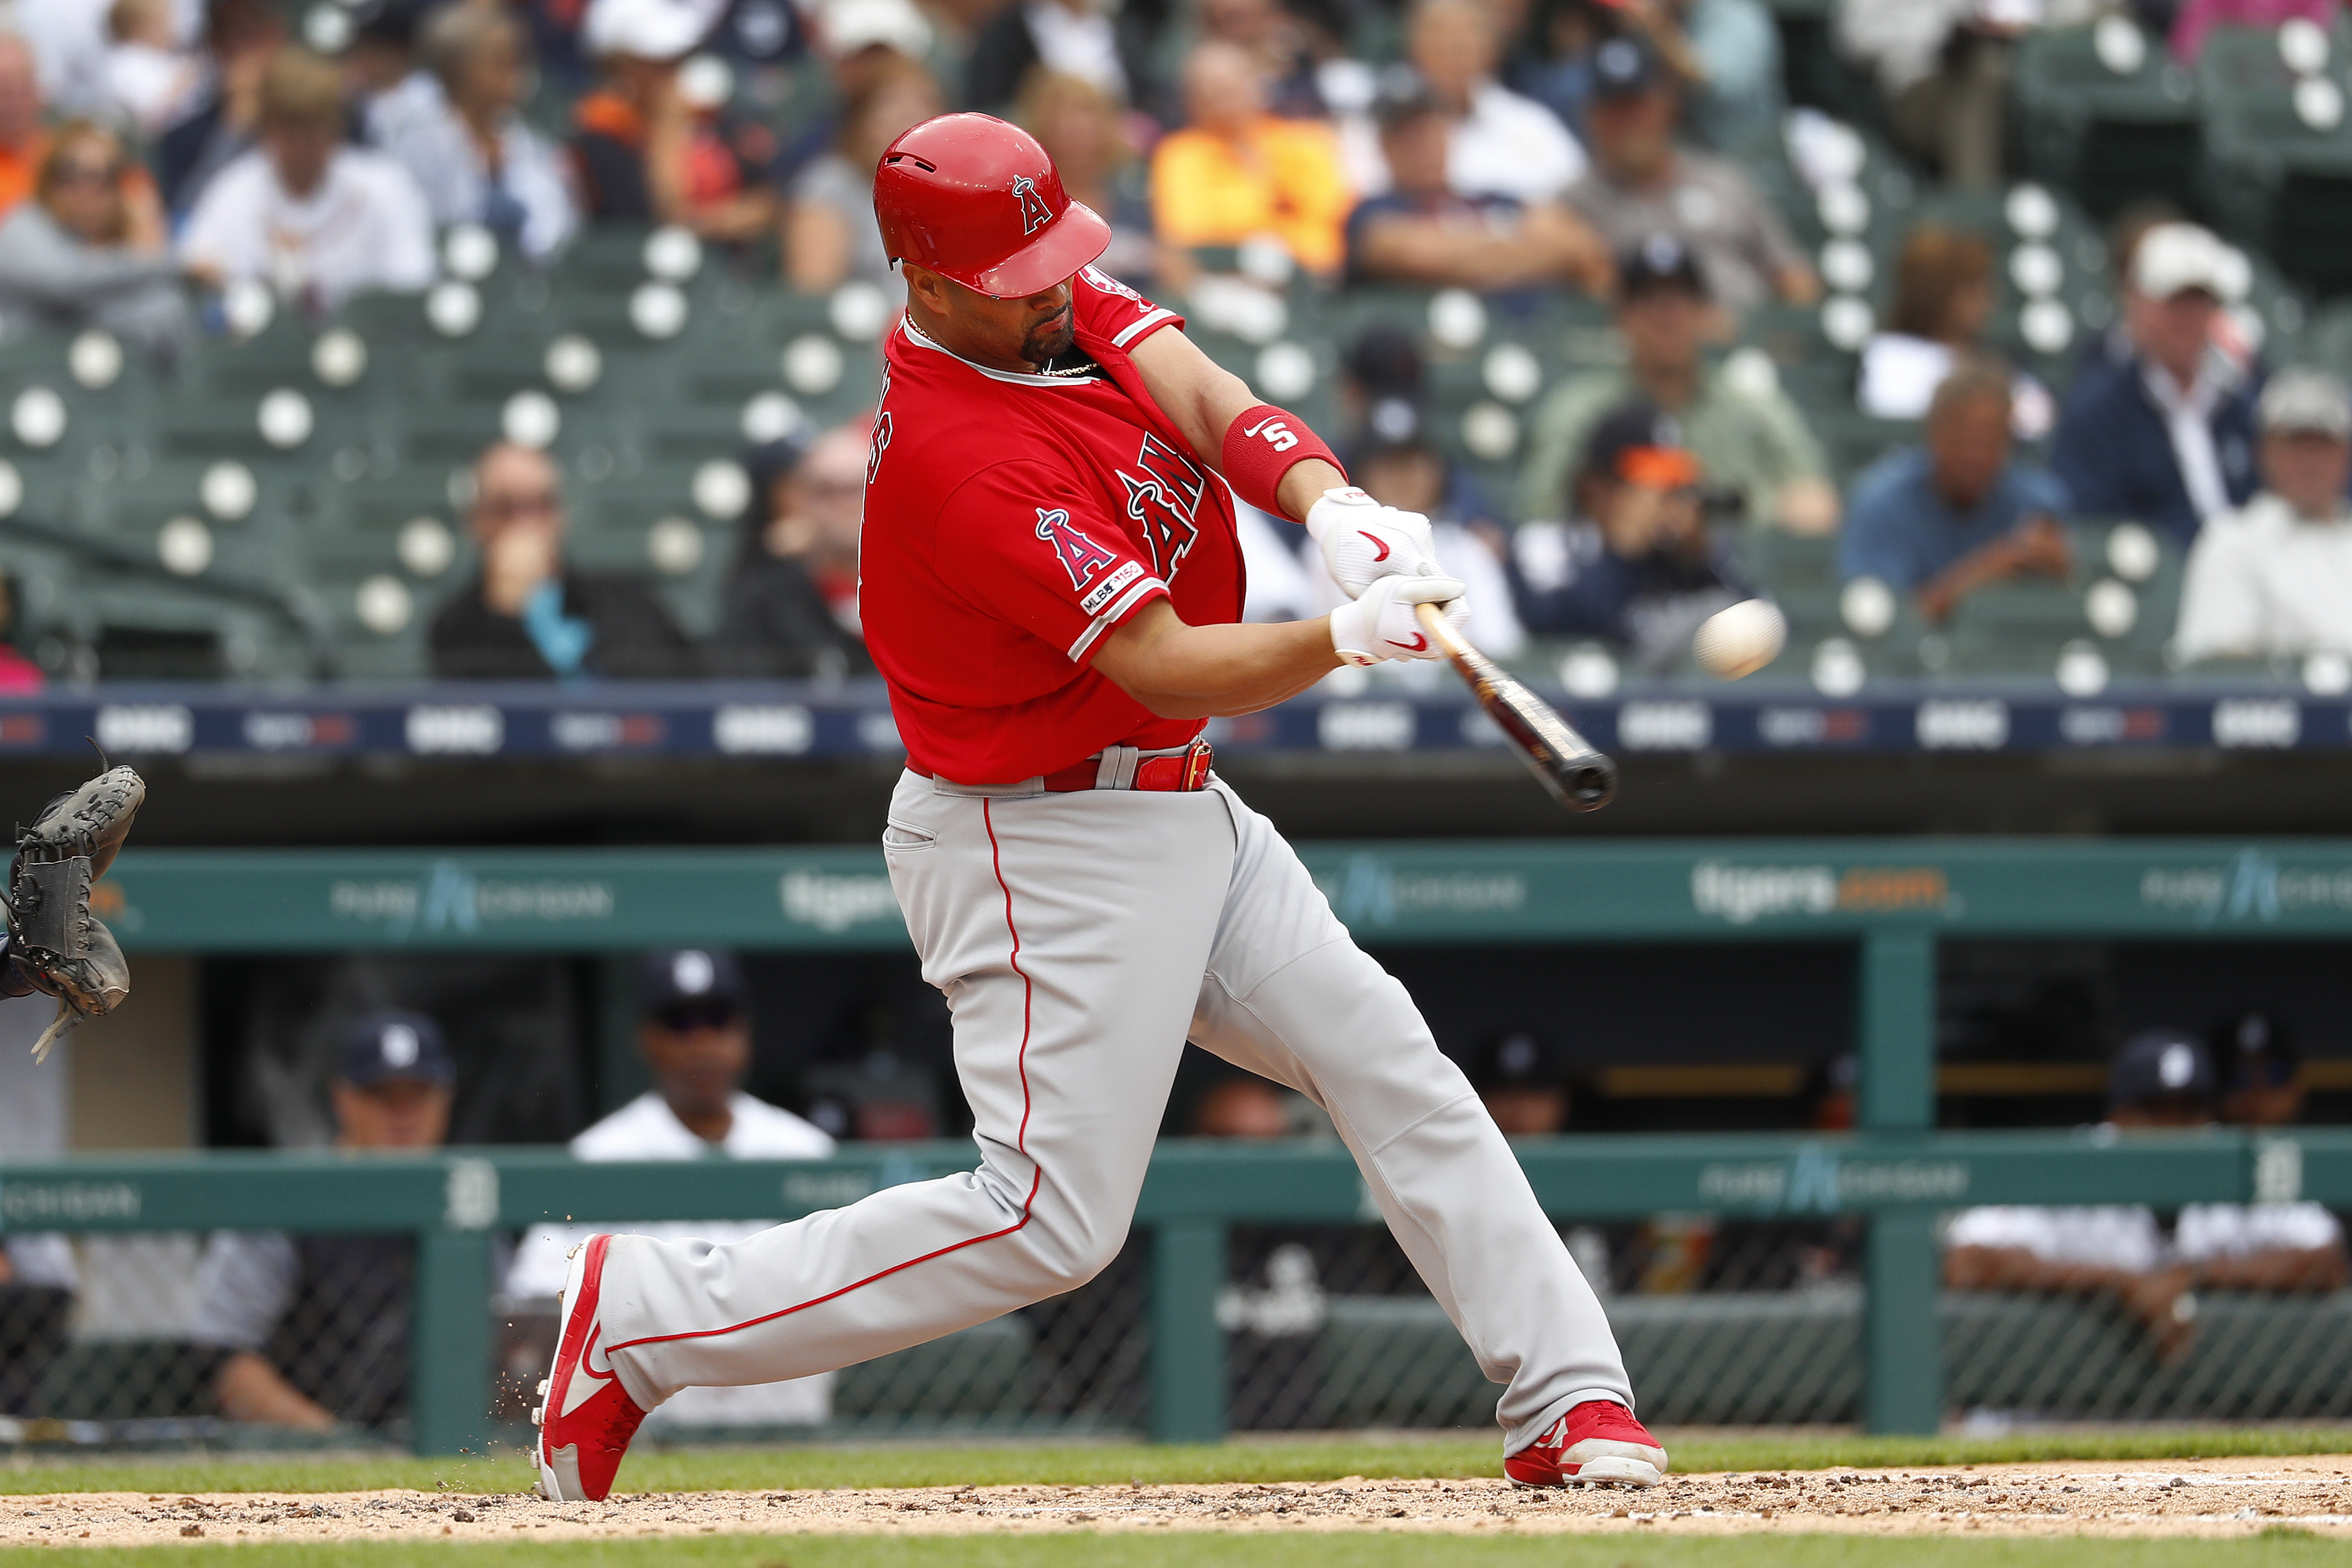 Pujols reaches 1,200 RBIs, joins Aaron and Rodriguez